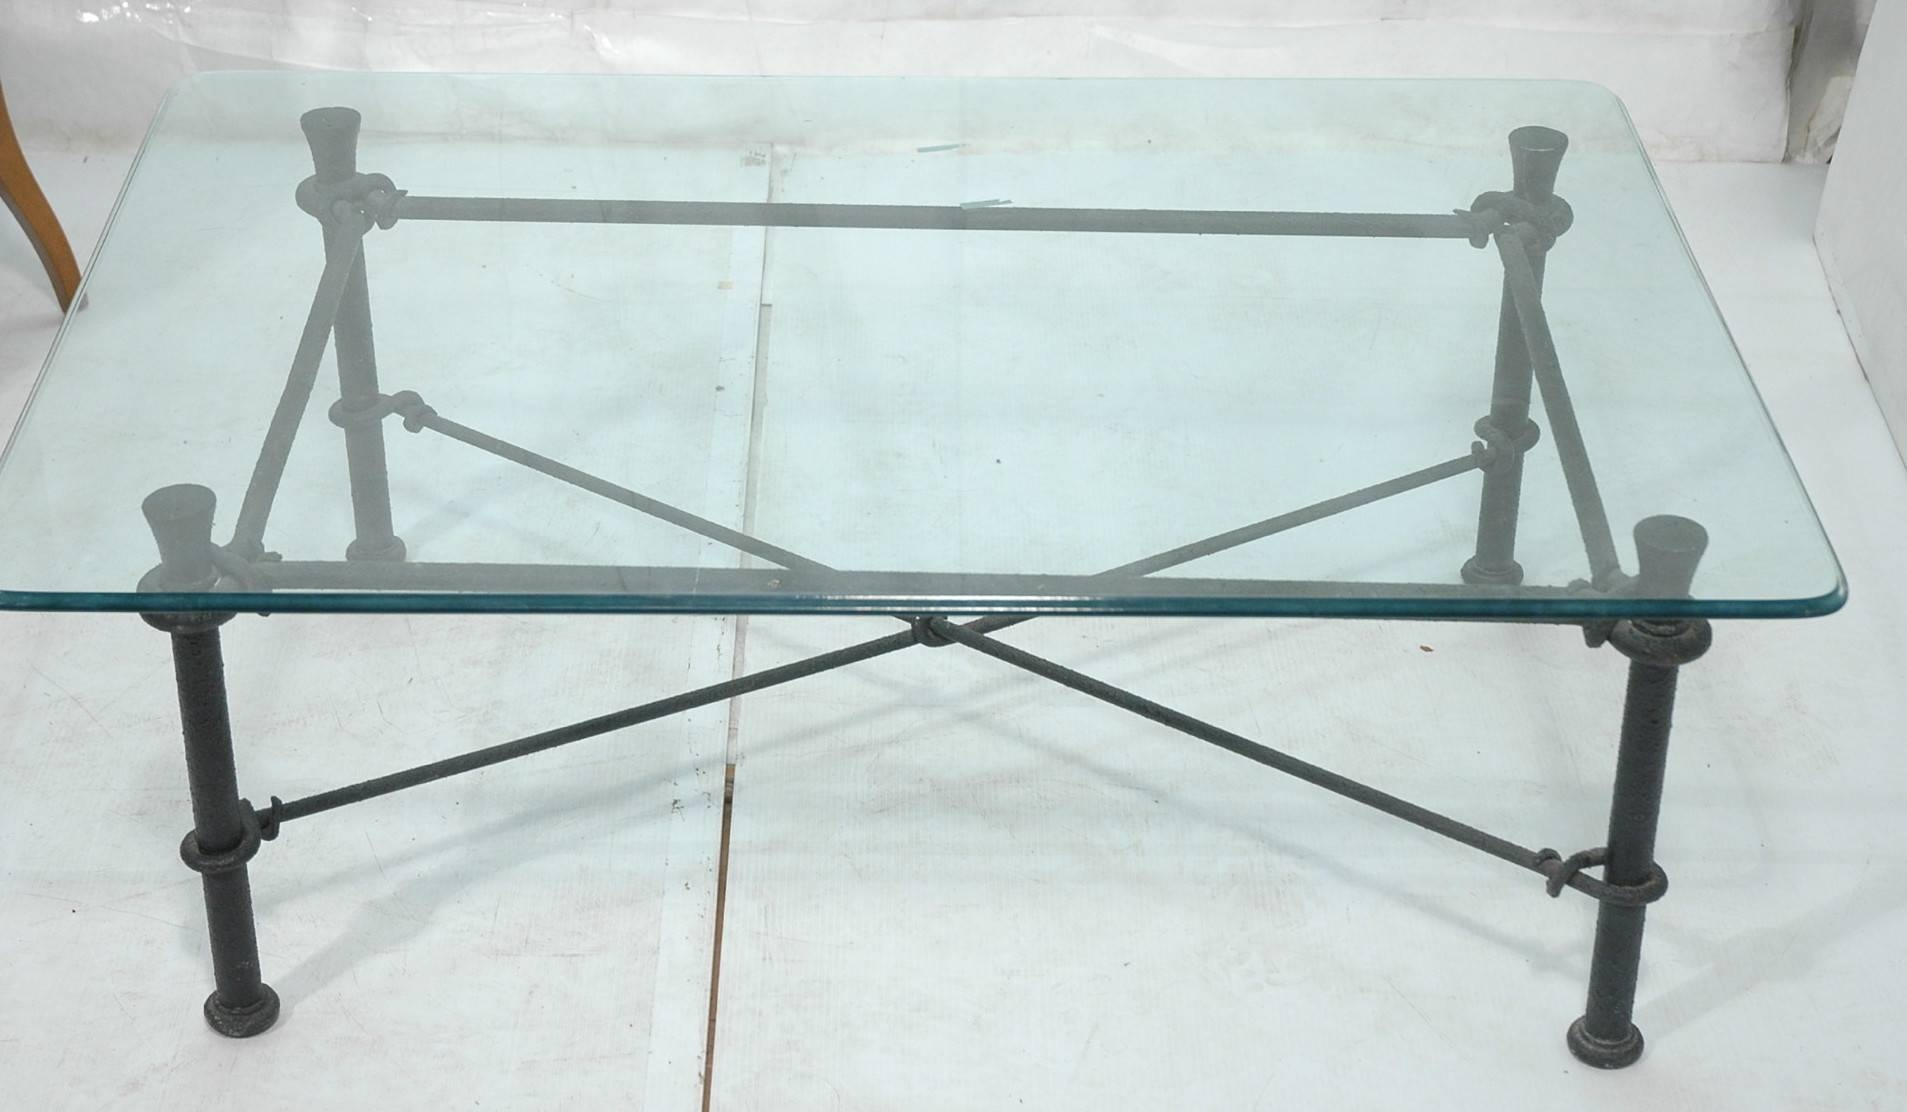 Glass Coffee Tables: Captivating Wrought Iron Glass Top Coffee intended for Iron Glass Coffee Table (Image 8 of 15)